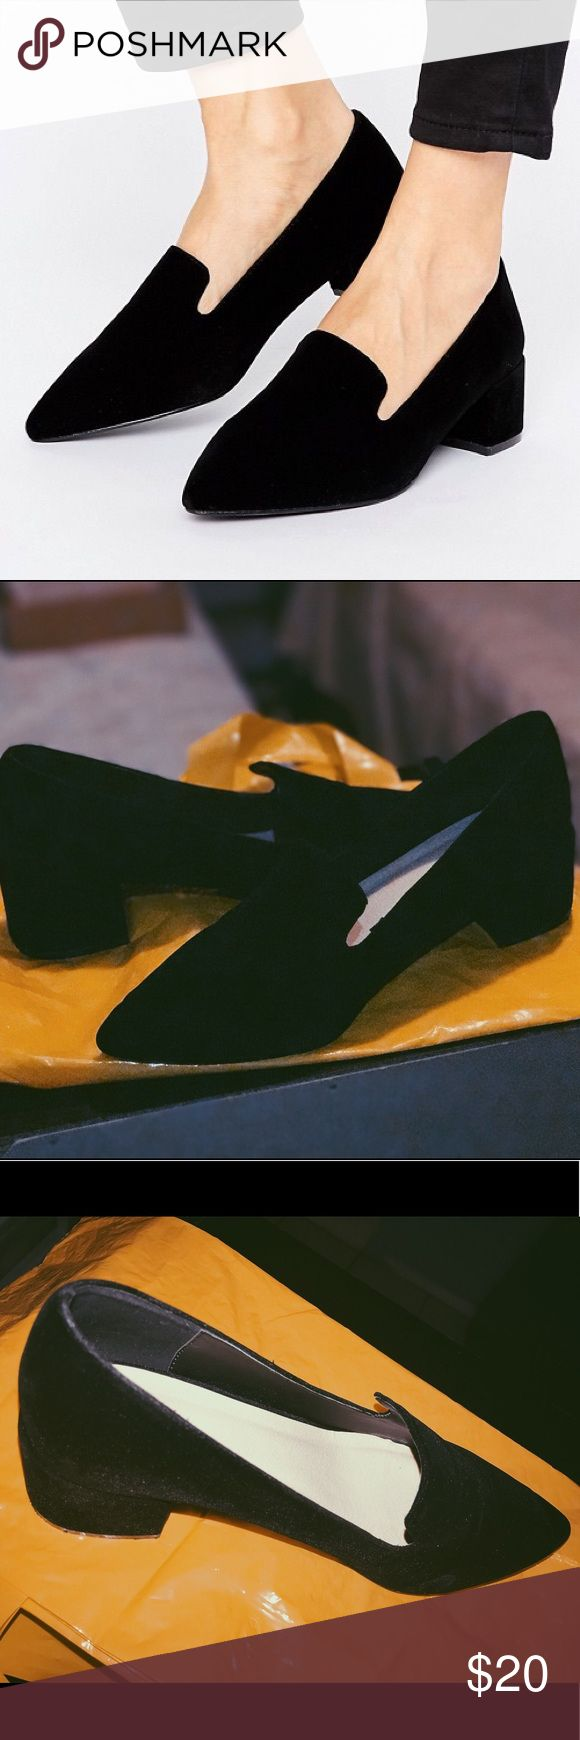 ASOS SIA Velvet Pointed Heels (UK 7 / US 9) CURRENTLY SOLD OUT ON ASOS.COM (As of 06/08/17) /// RUNS BIG!!!! Is a size US 9 but fits a 10 perfectly. Worn only once, has been sitting in its original box since. Original packing paper still in box. Sole on the heel slightly scuffed, velvet clean and just like new. Amazing condition! ASOS Shoes Heels